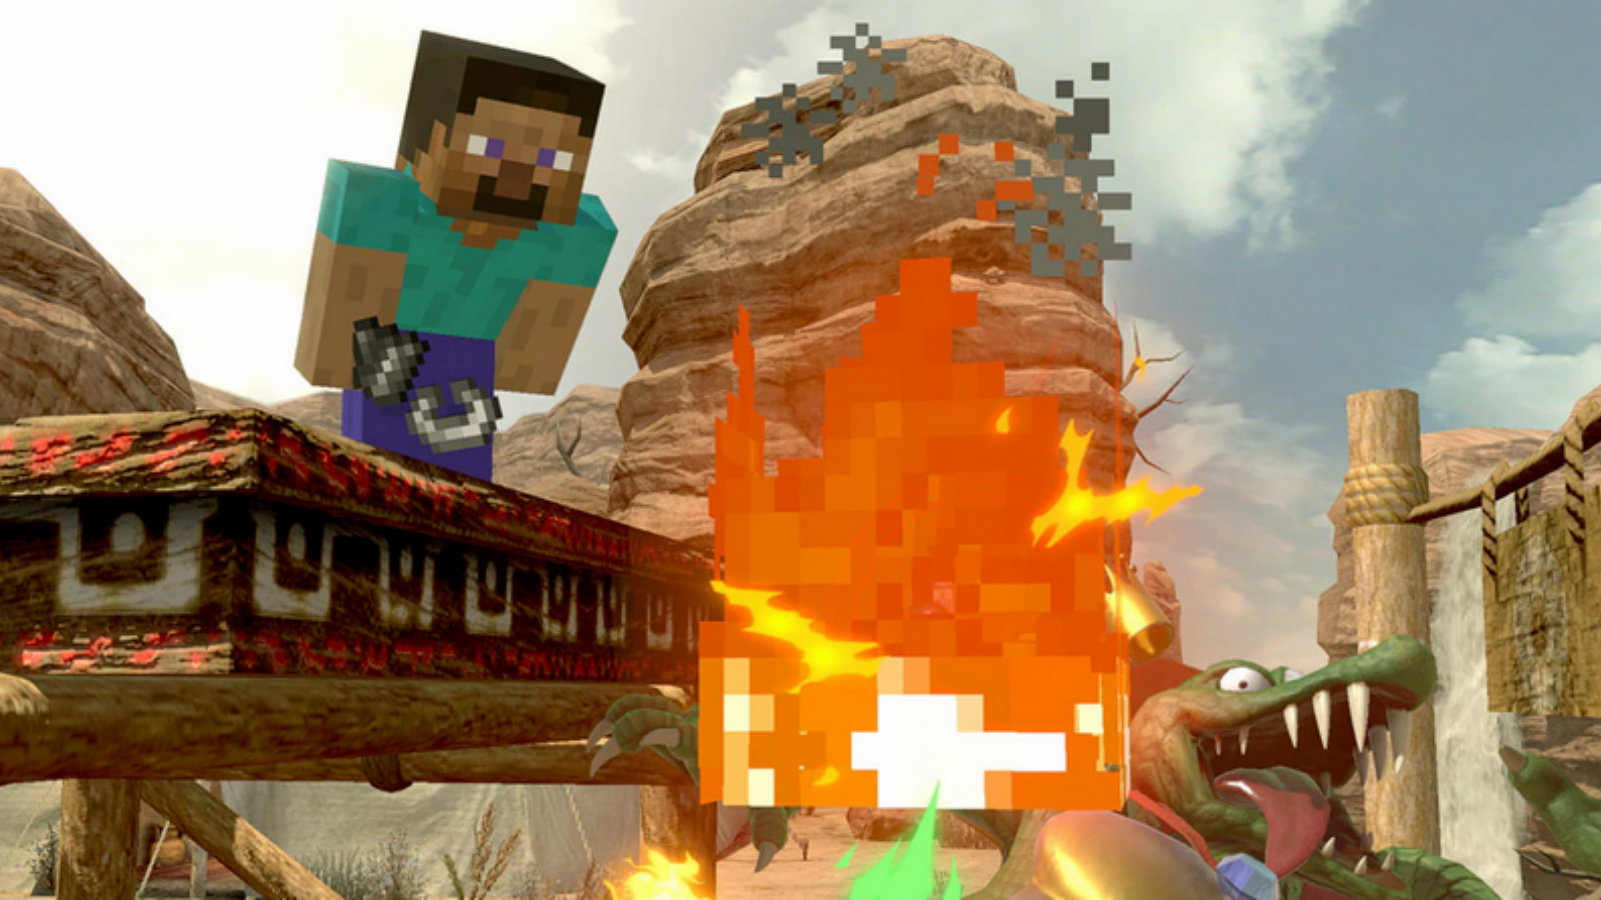 Steve from Minecraft is a major threat